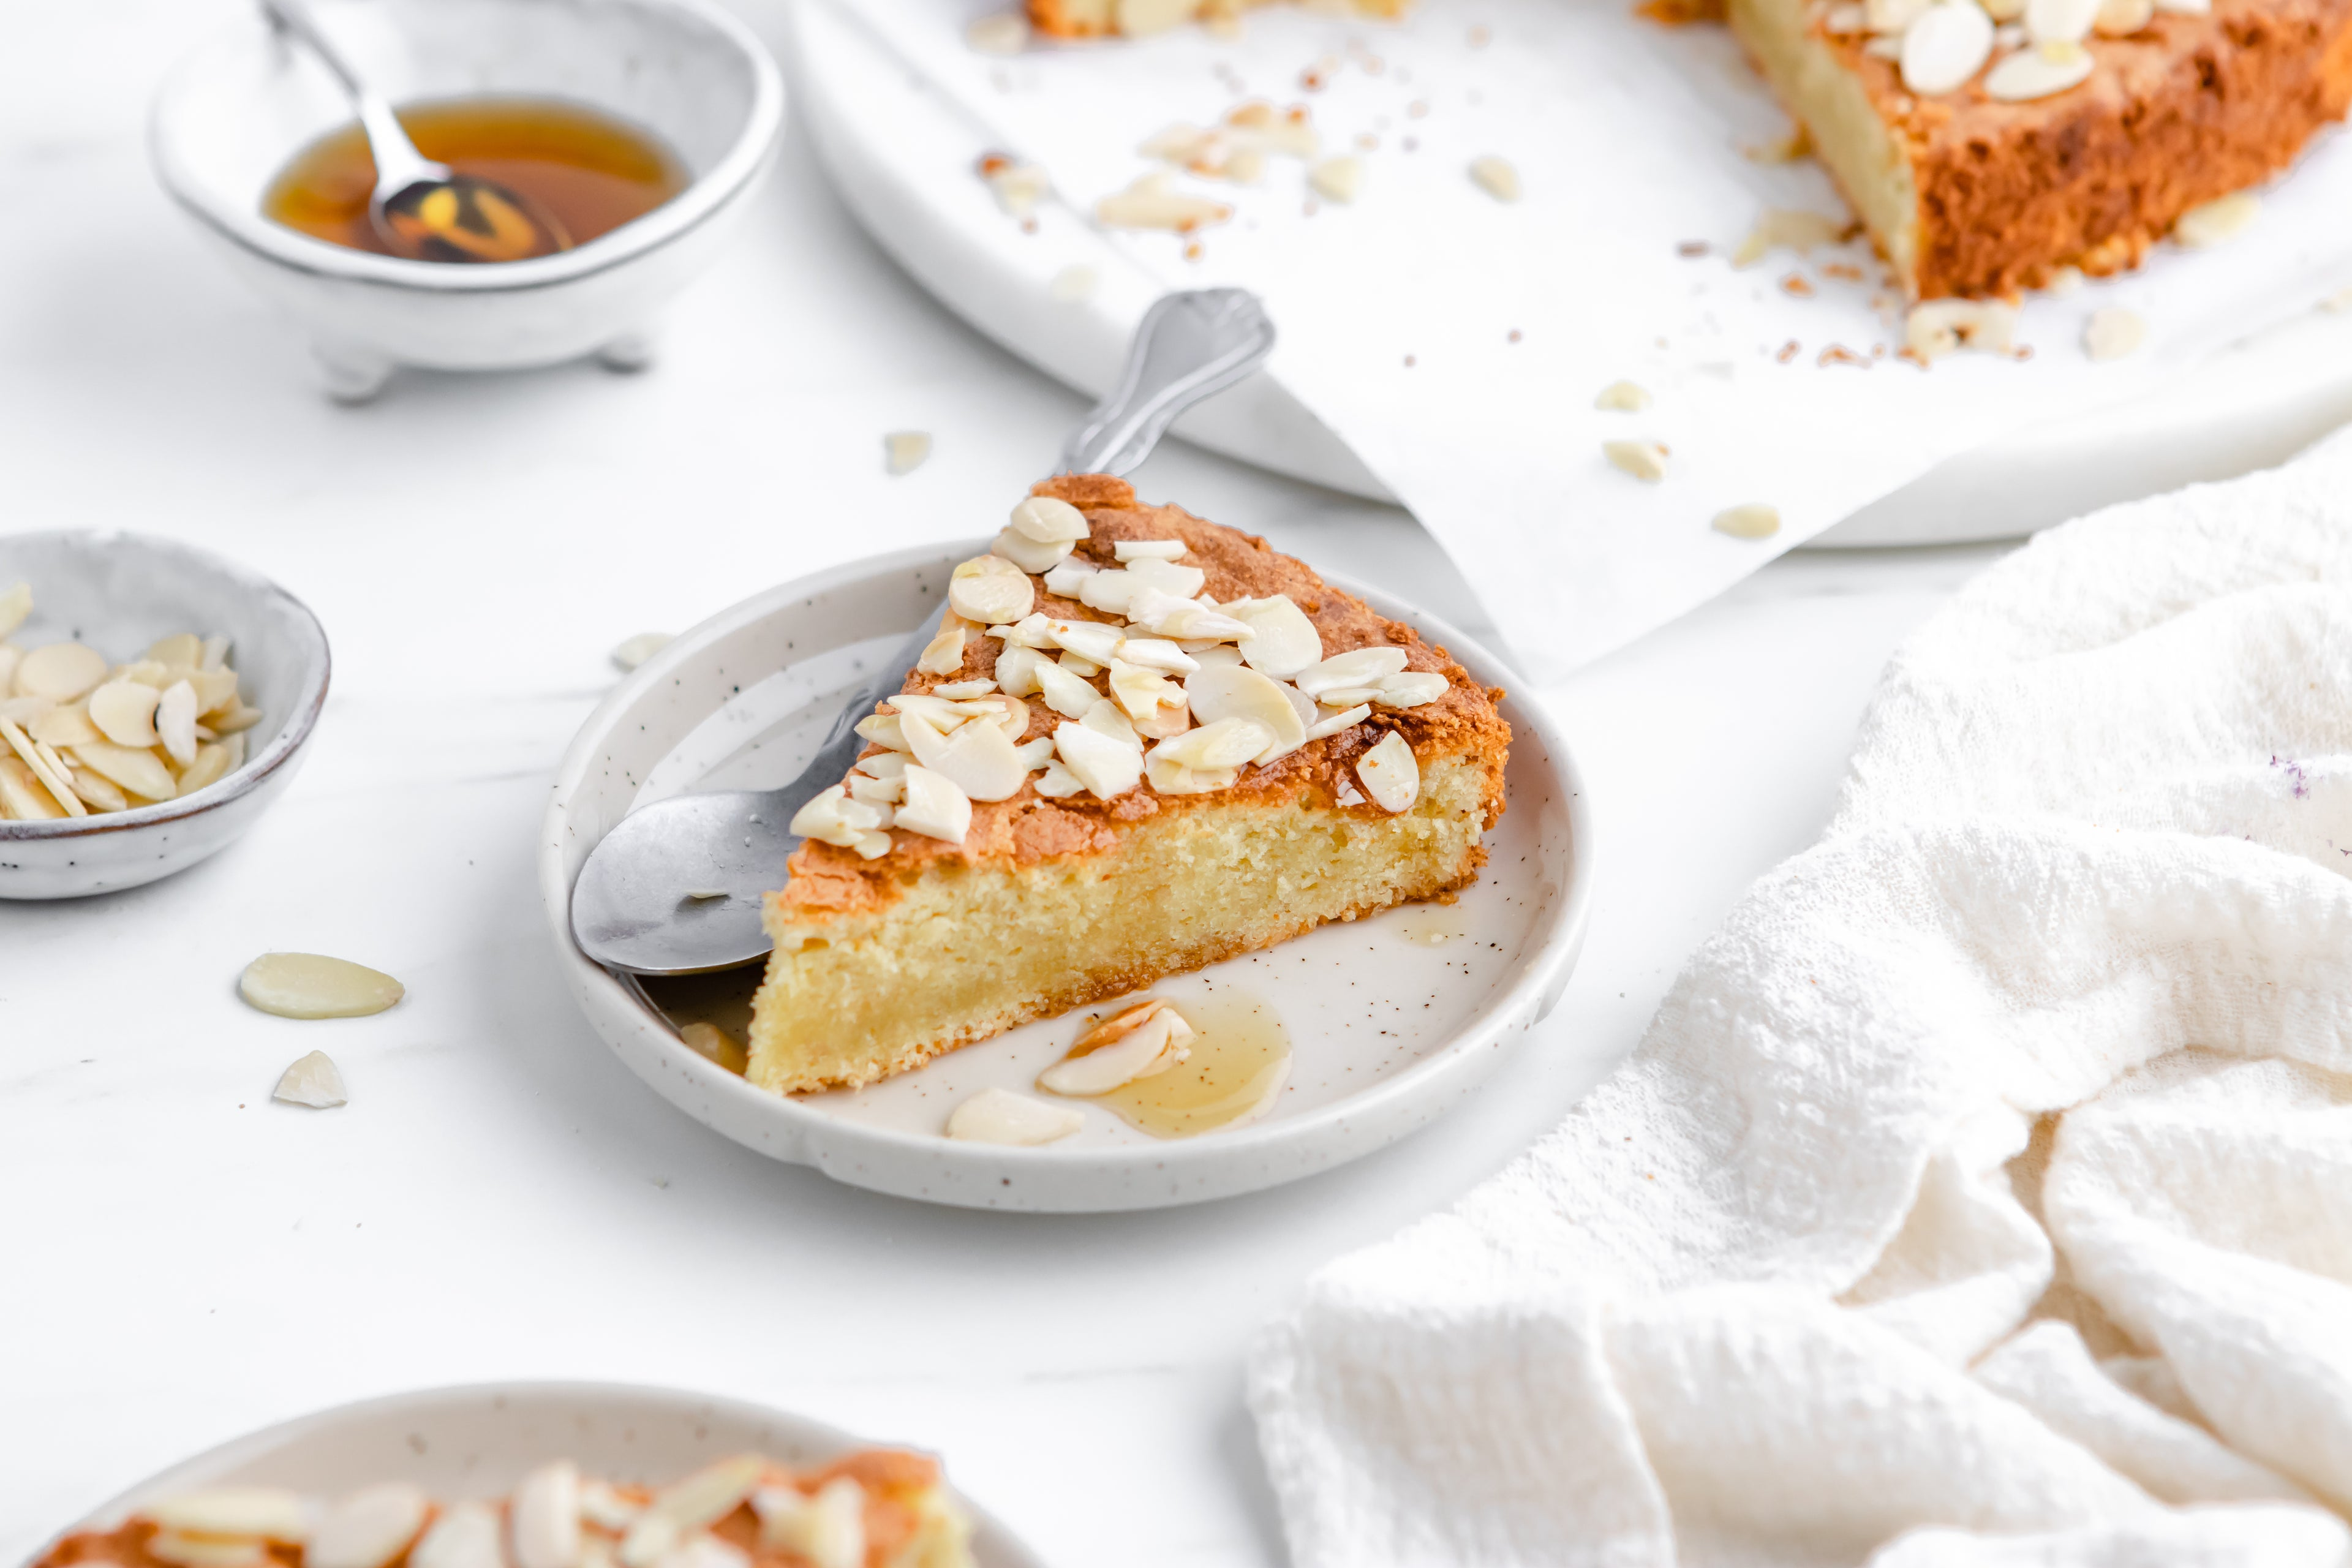 A slice of almond cake on a plate with a spoon